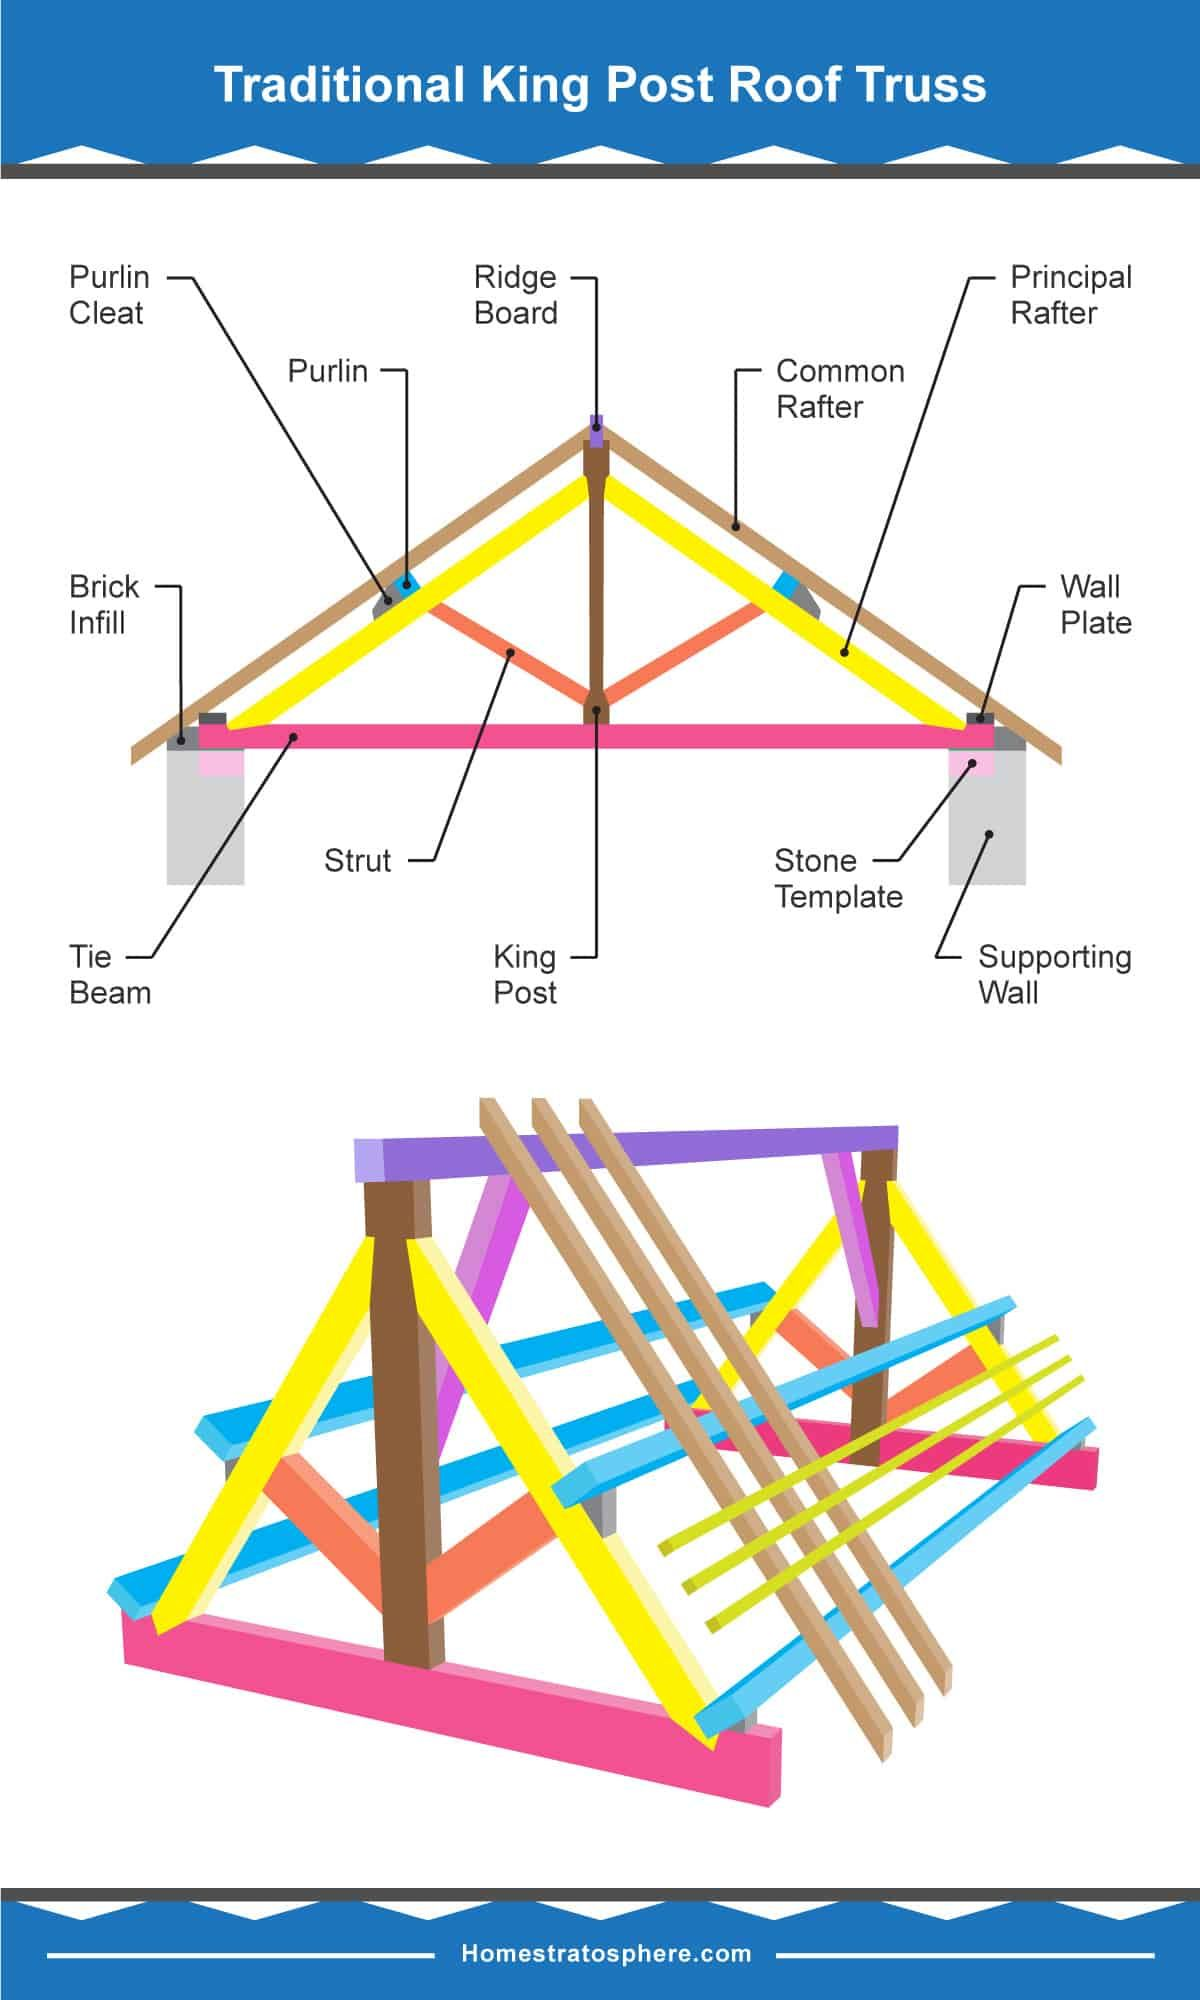 39 Parts Of A Roof Truss With Illustrated Diagrams Definitions Roof Trusses Roof Truss Design Roof Design